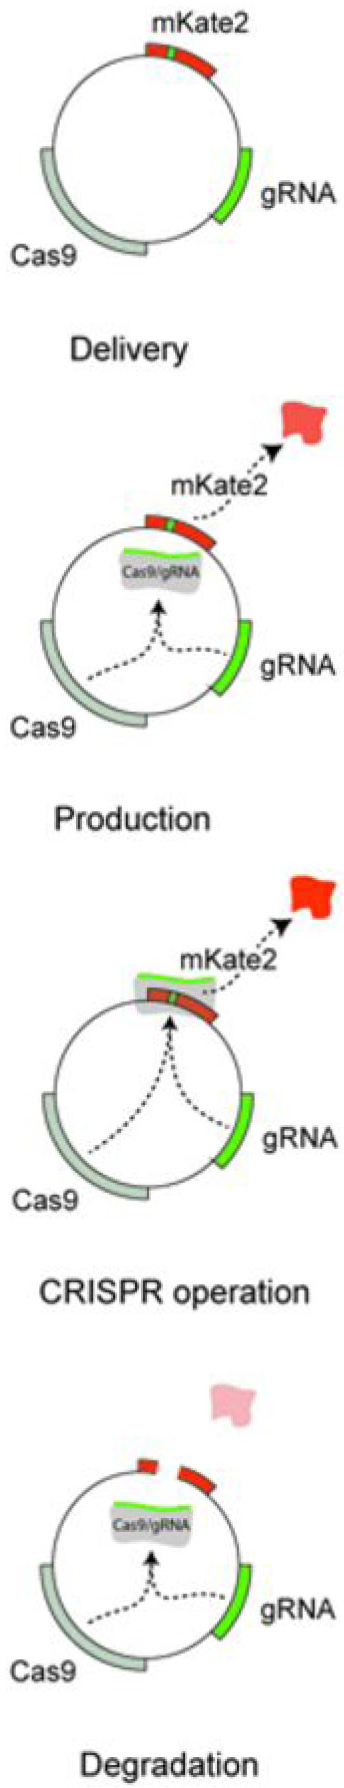 CRISPR technology can now be used to control the amount and timing of protein expression in a cell.